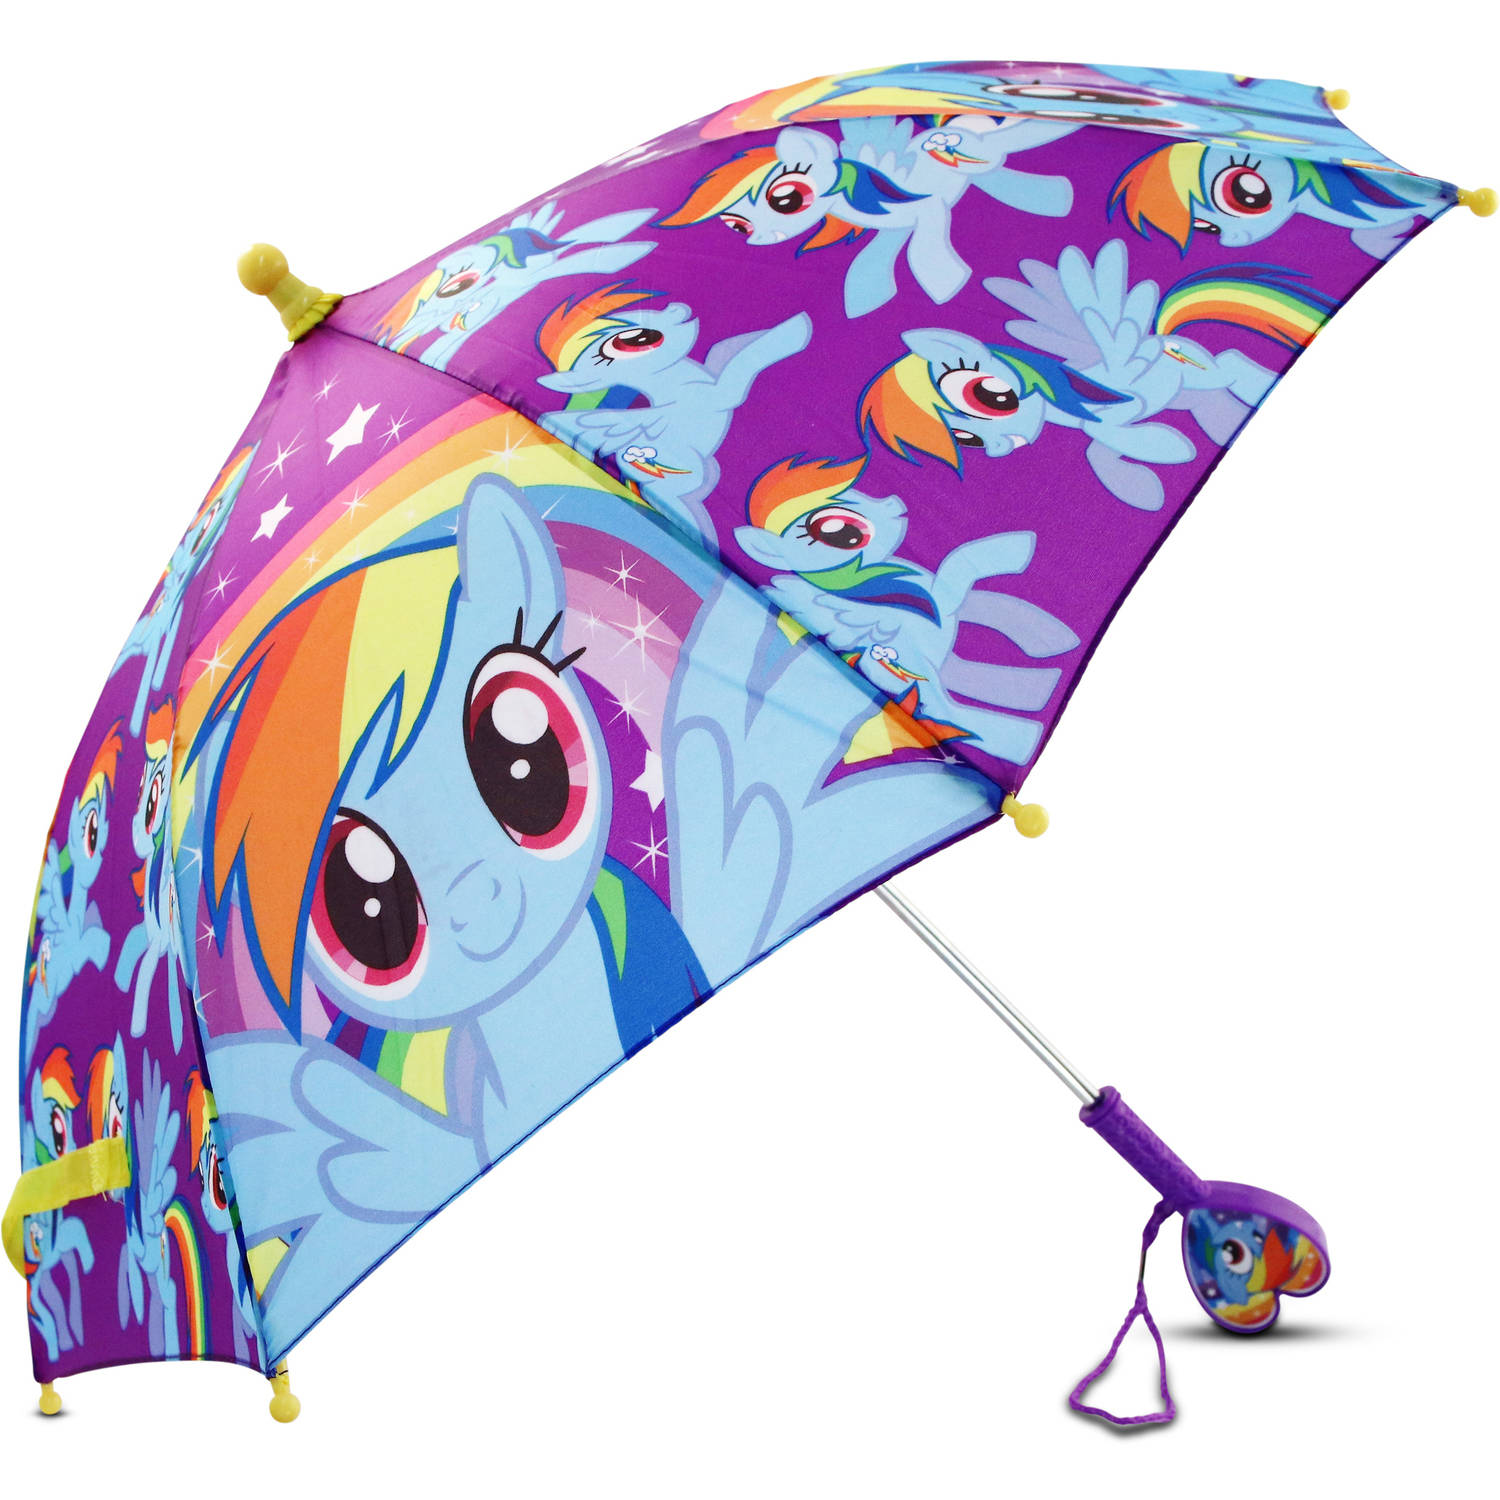 Click the Pony With Umbrella coloring pages to view printable version or color it online (compatible with iPad and Android tablets).. You might also be interested in coloring pages from My Little Pony category.